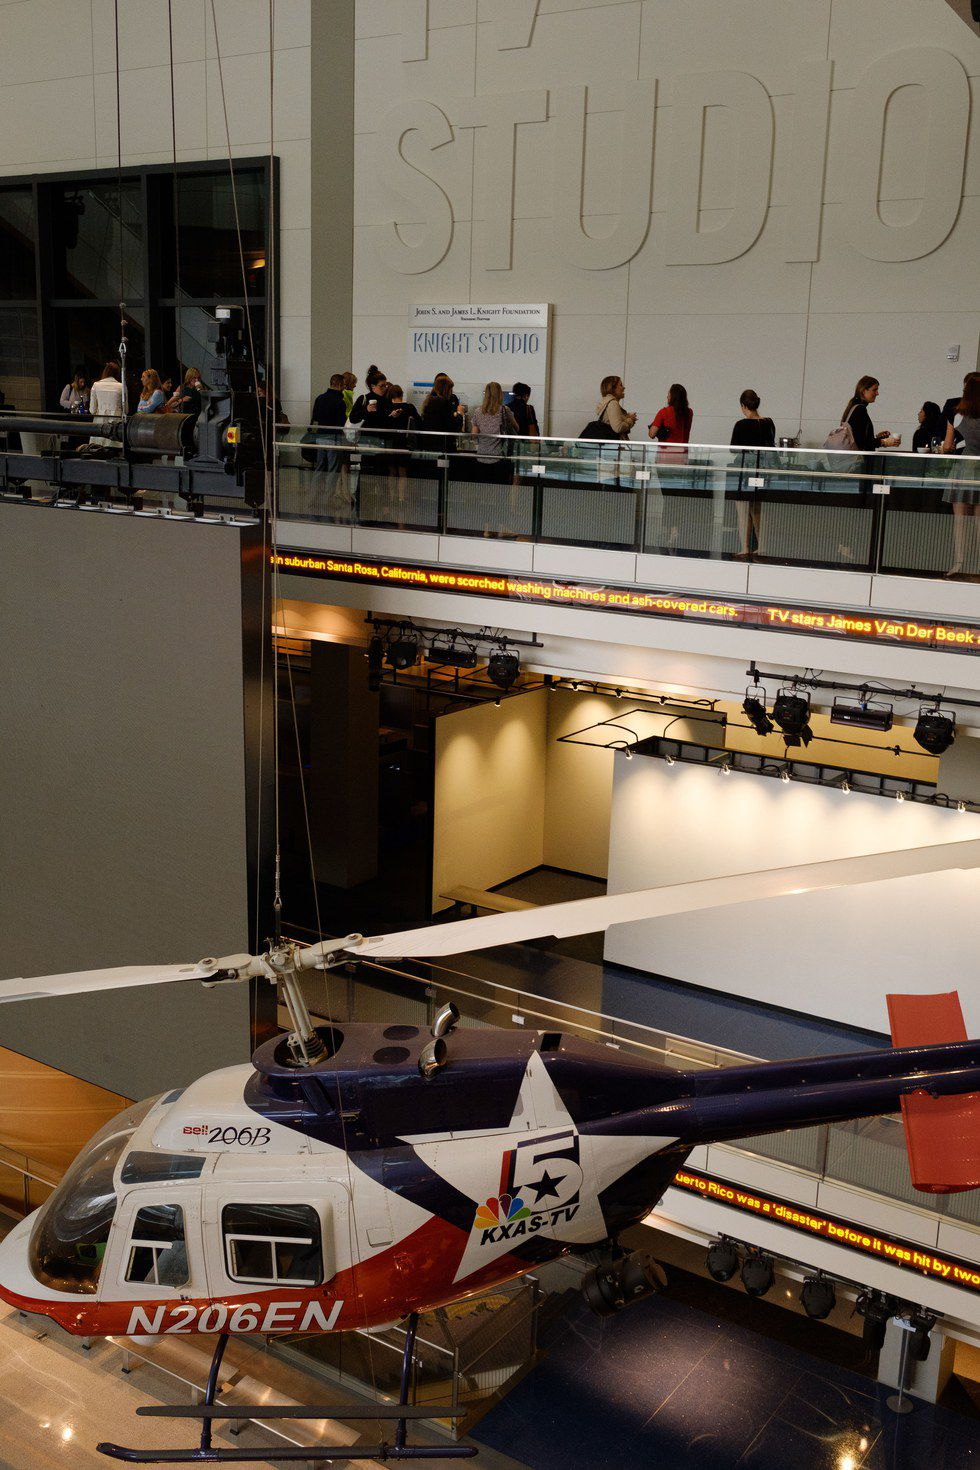 Guests on a balcony above a helicopter in a museum